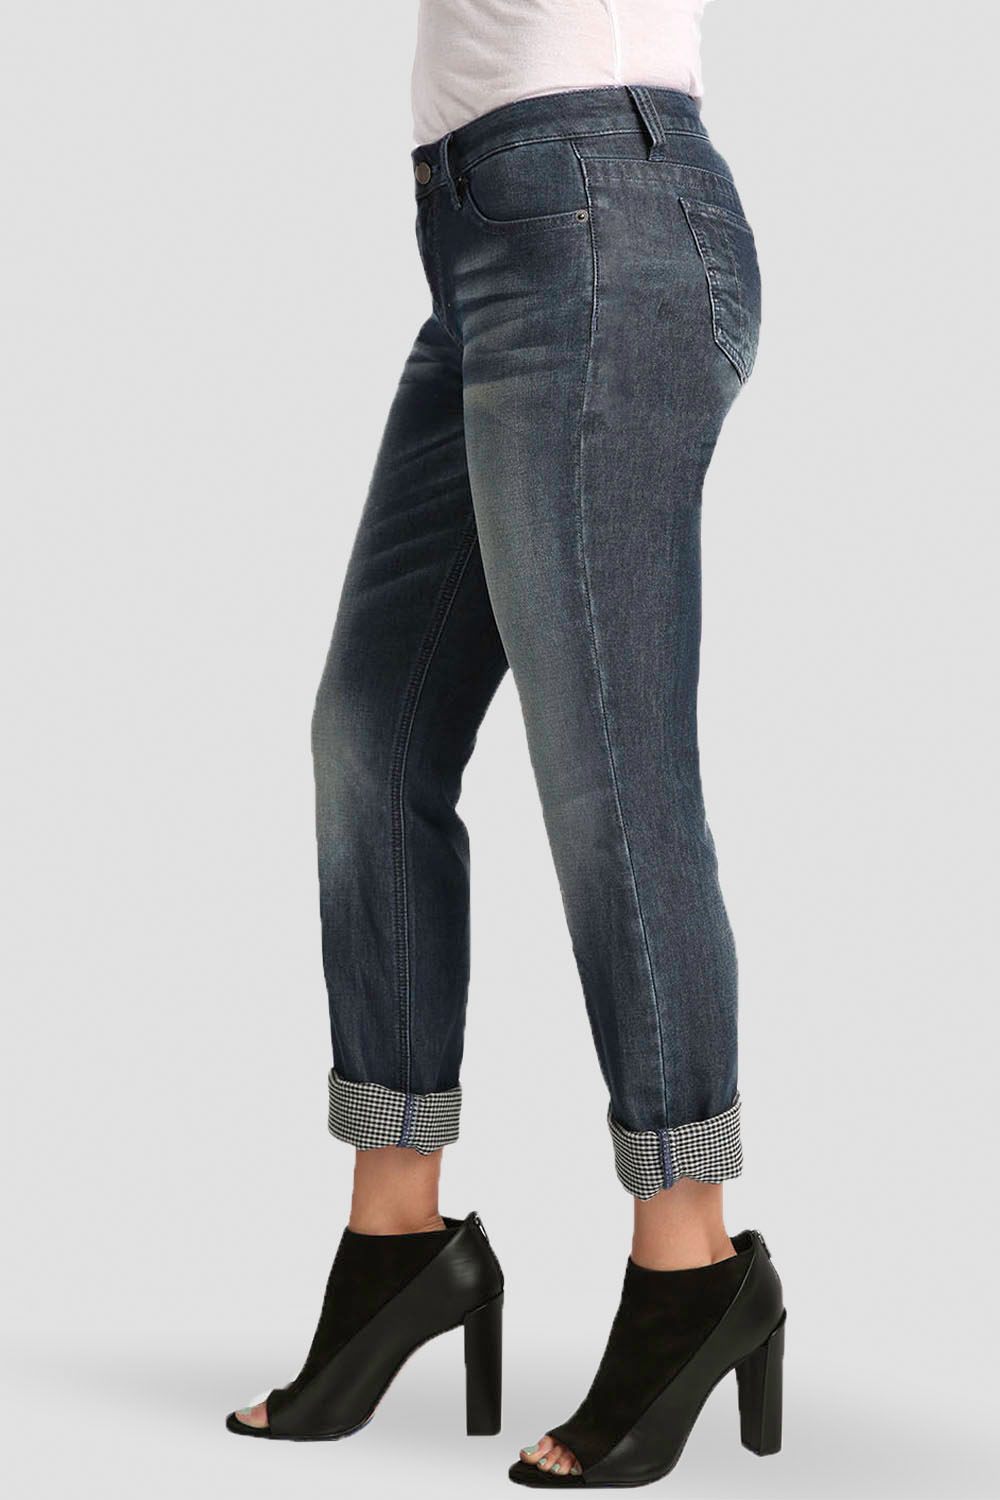 Stretch Woven Double Faced Denim Boyfriend Jeans W Rolled Cuffs